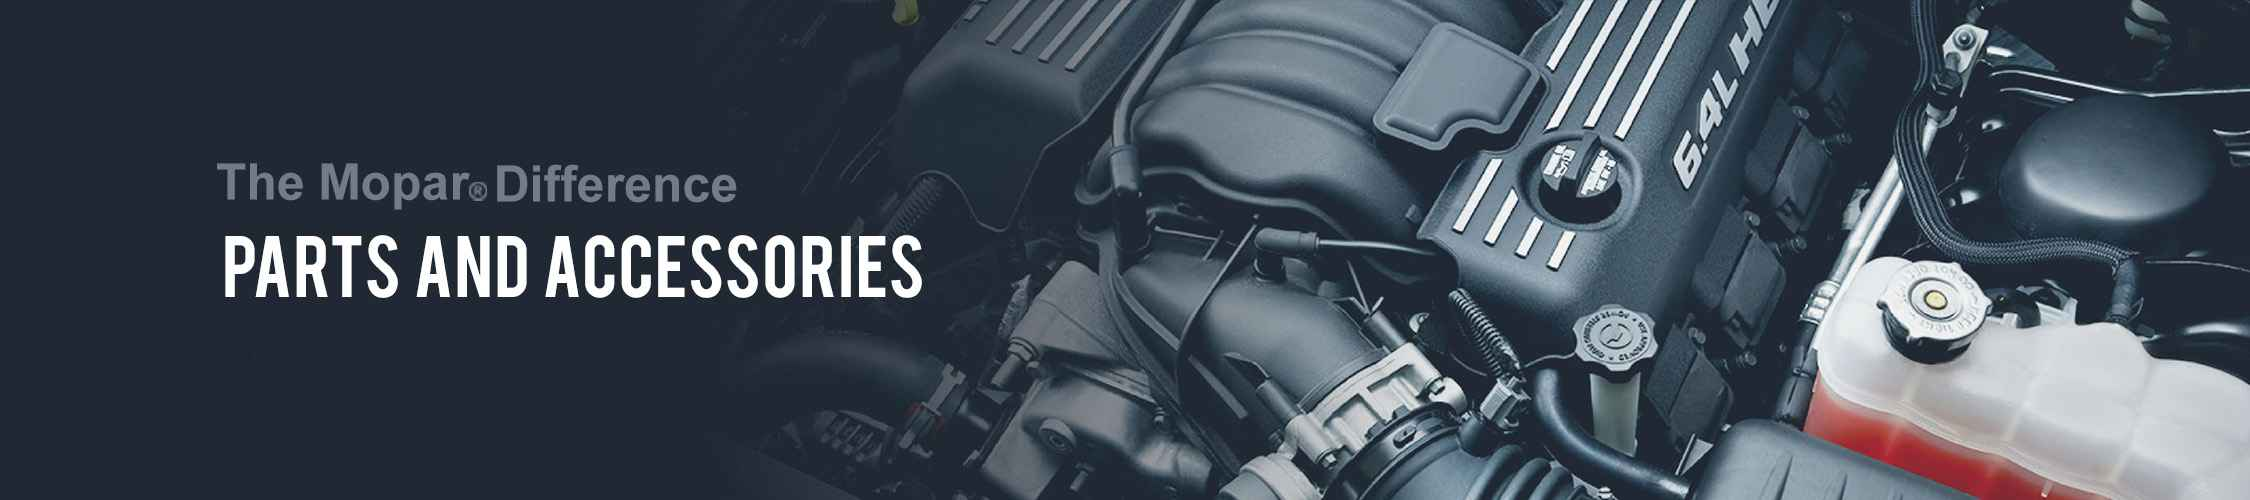 Original Mopar Parts & Accessories | Mopar Estores